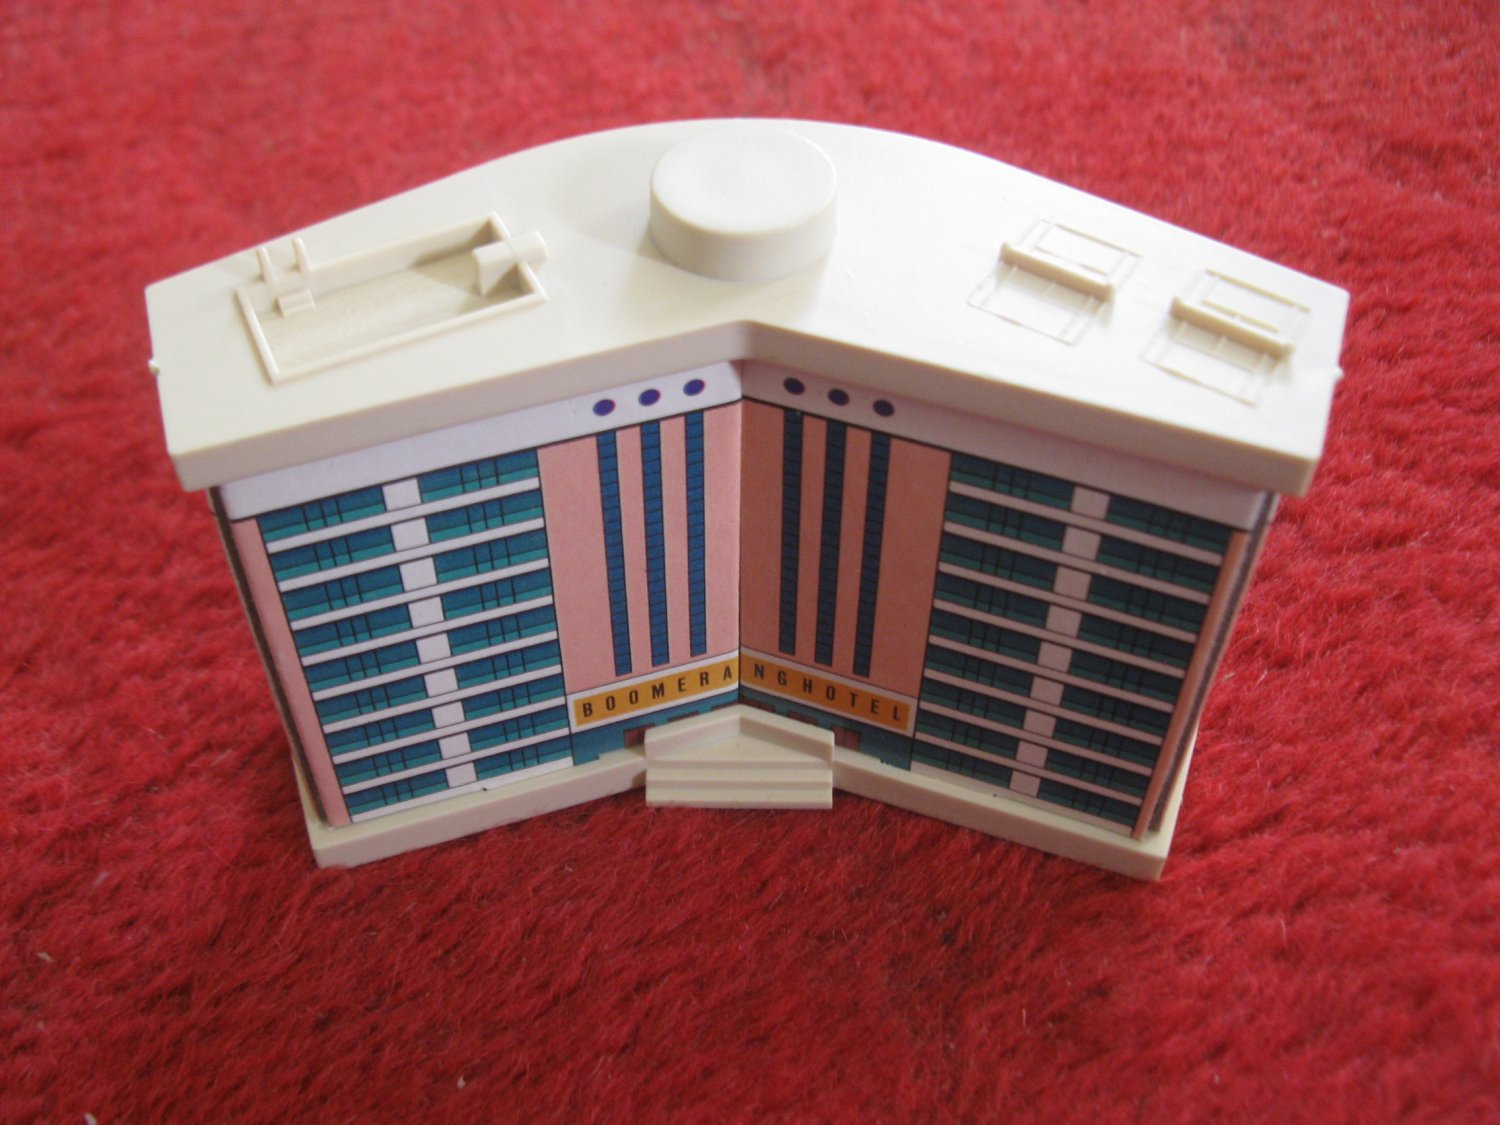 1987 Hotels Board Game Piece: Boomerang Hotel complete Main Building